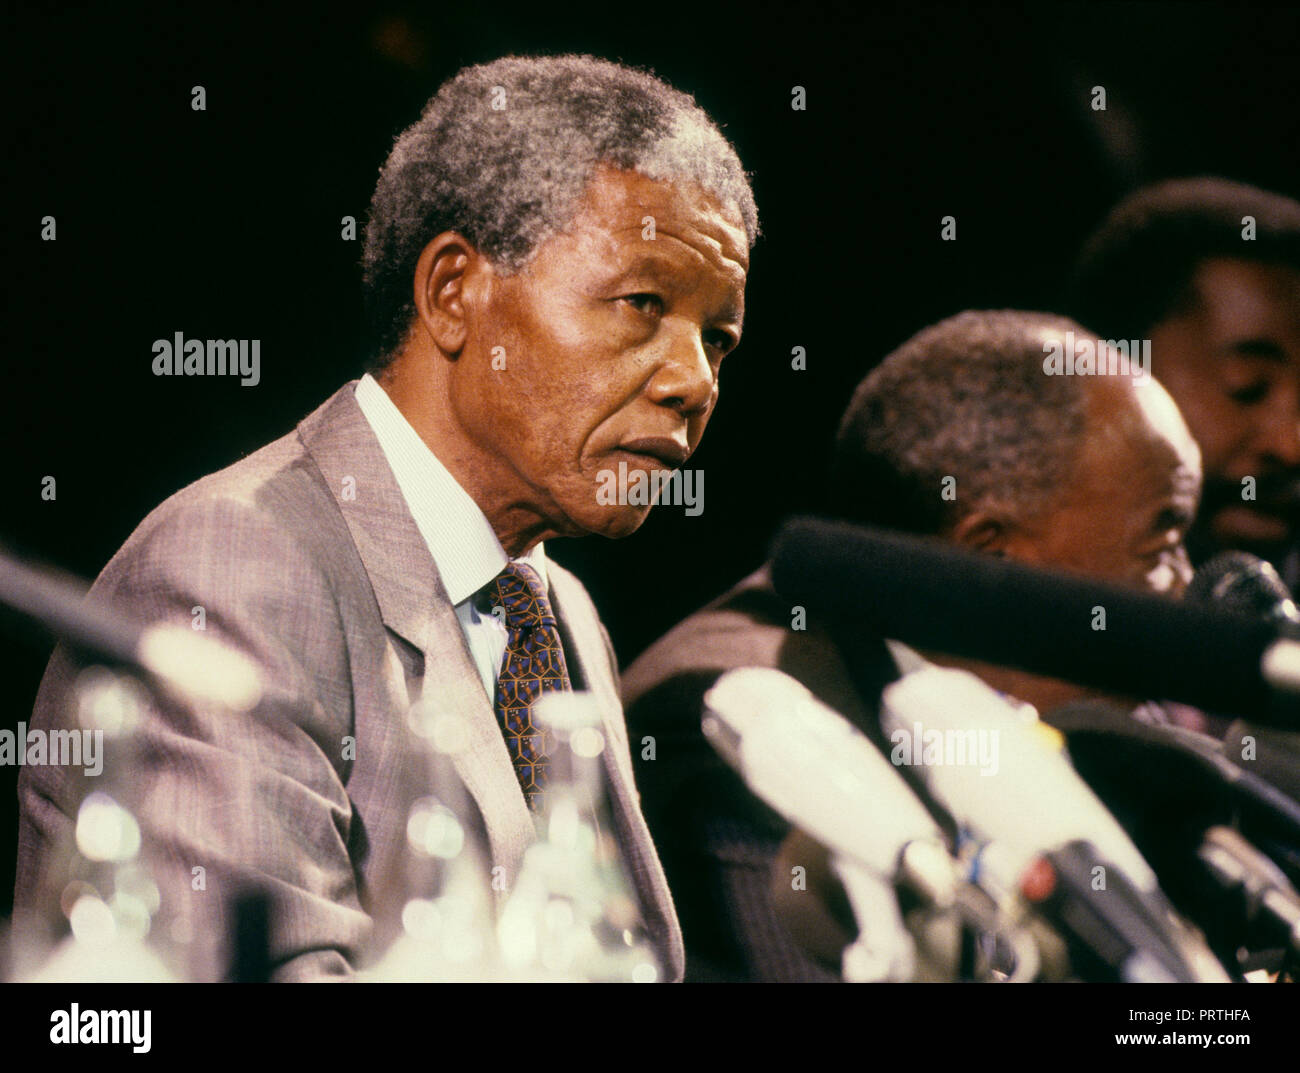 NELSON MANDELA ANC and South Africa leader in Stockholm for meeting with Swedish leader 1990 - Stock Image